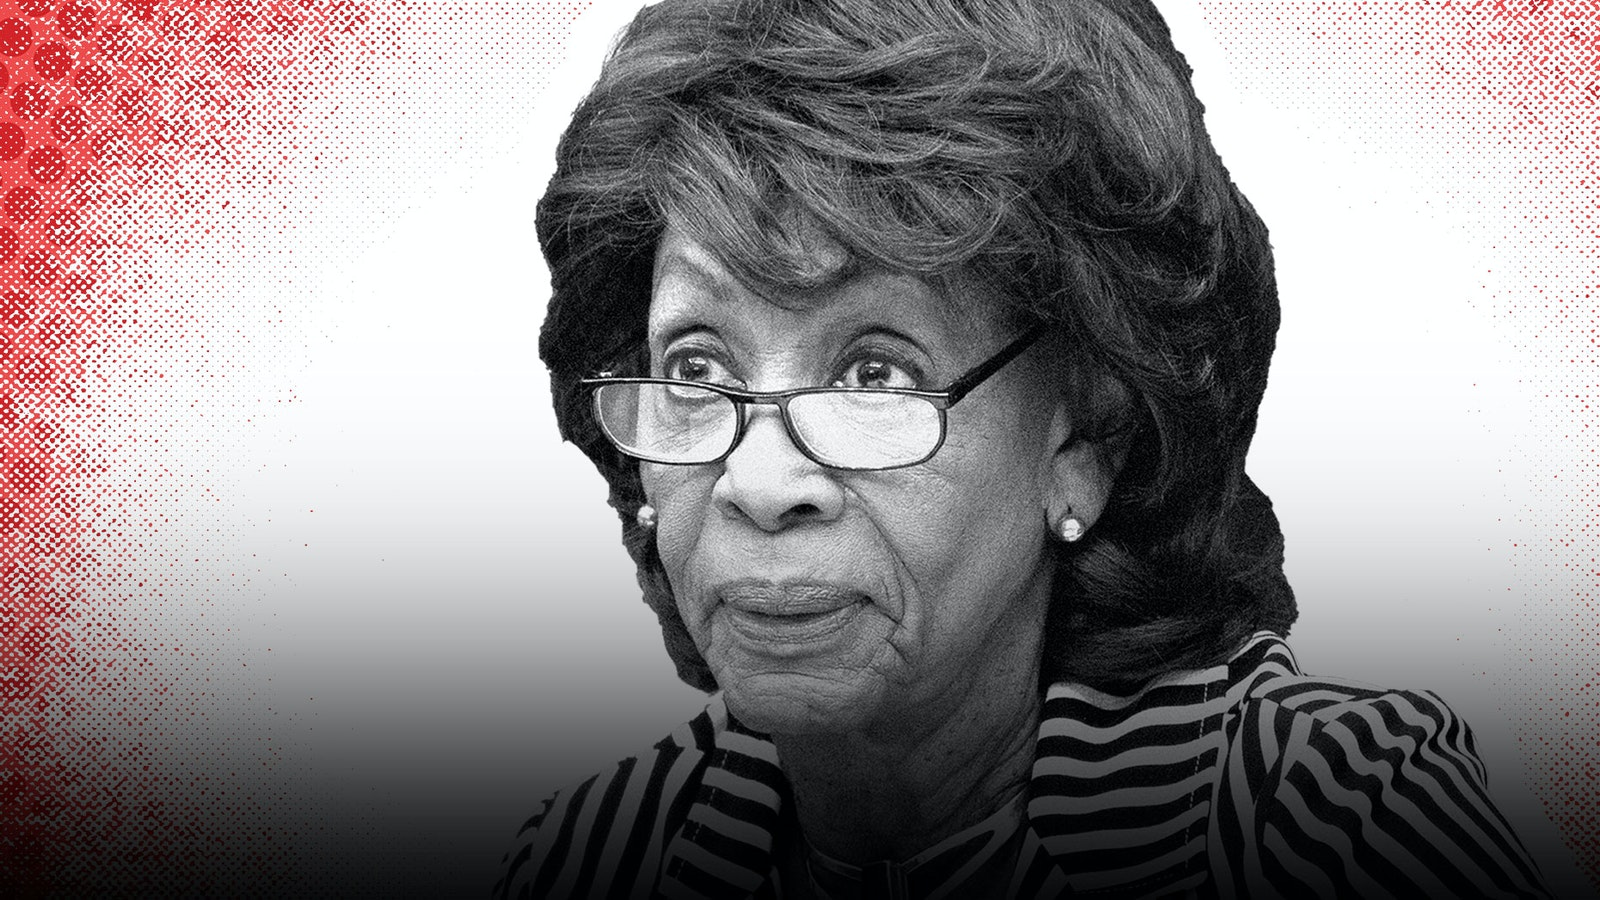 Maxine Waters photo by AP. Illustration by Mike Sullivan